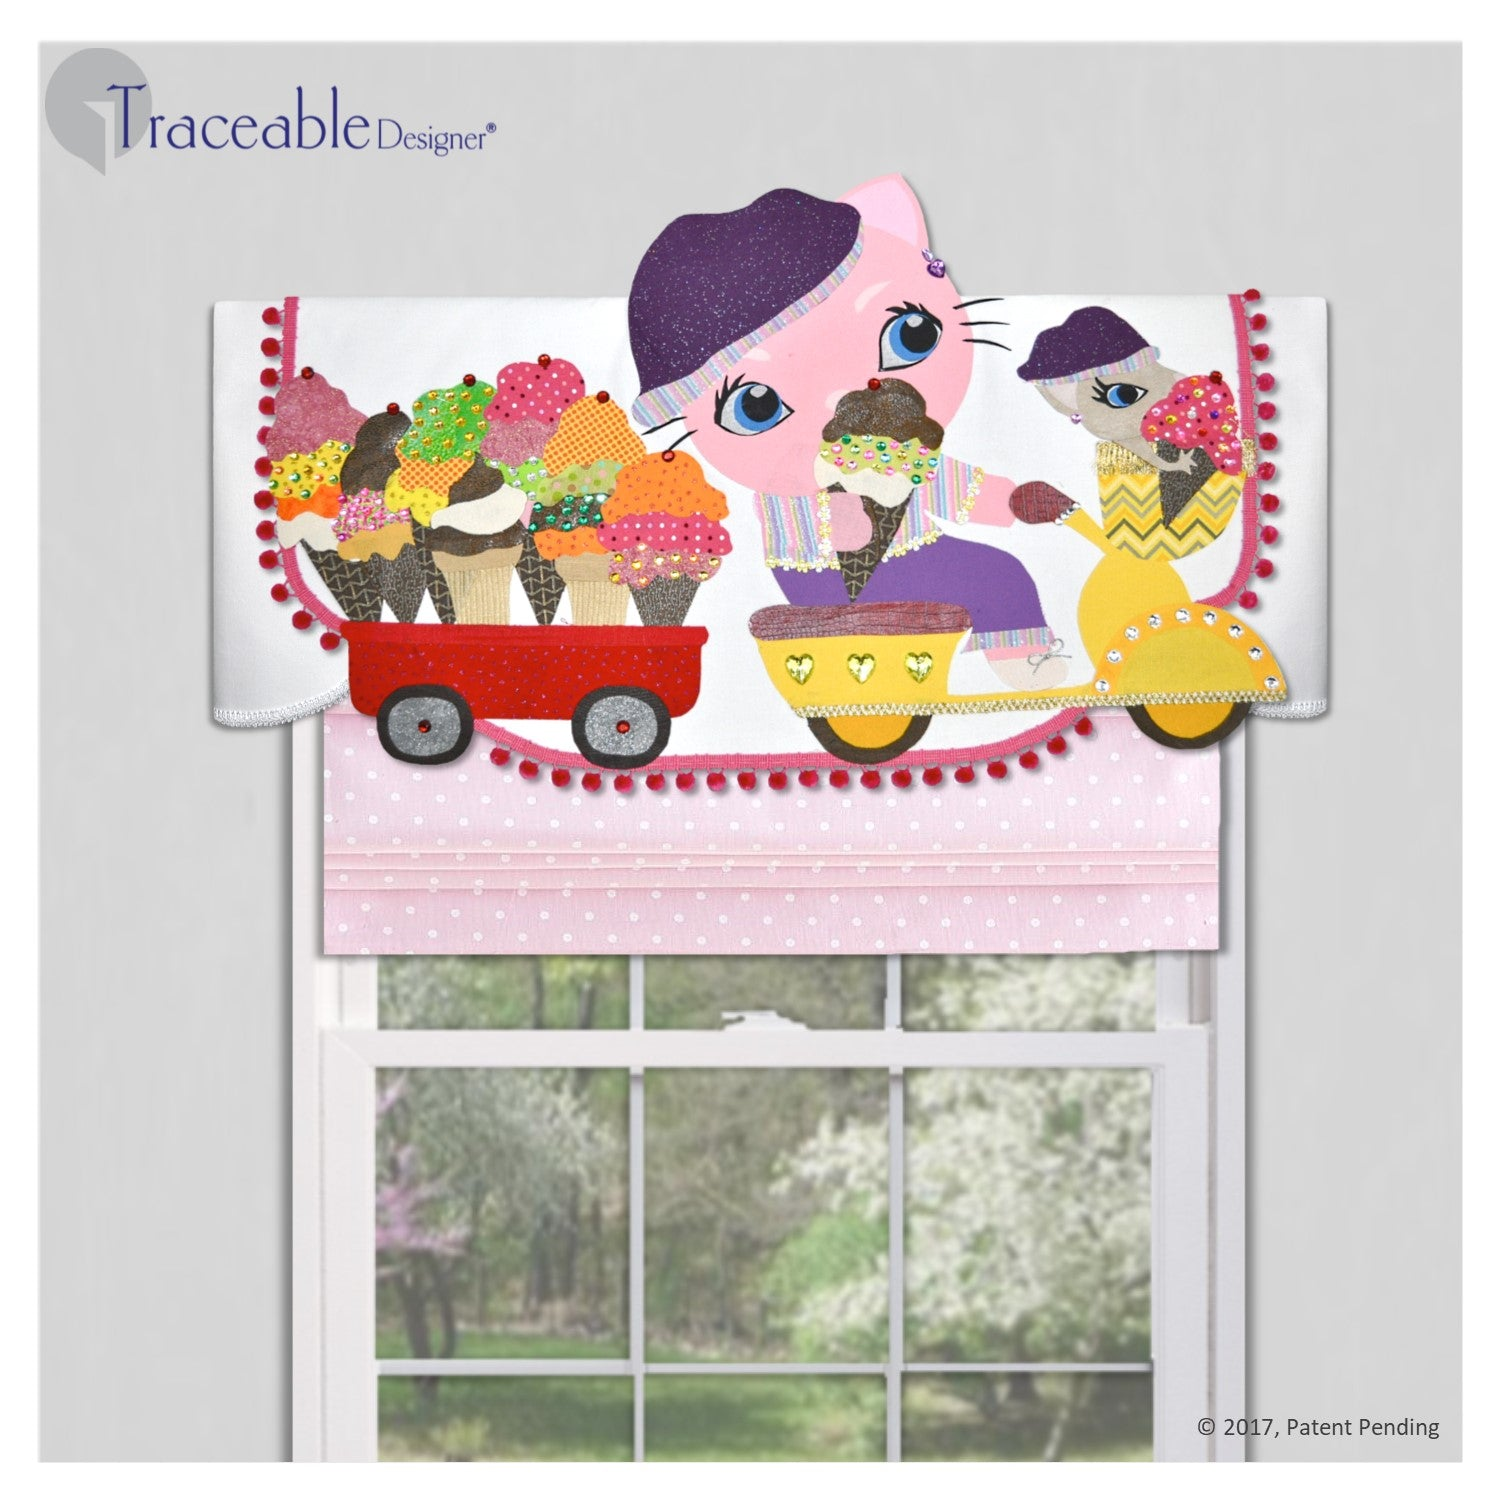 Traceable Designer girls room decorating kit, no-sew kitty valances and wall accents